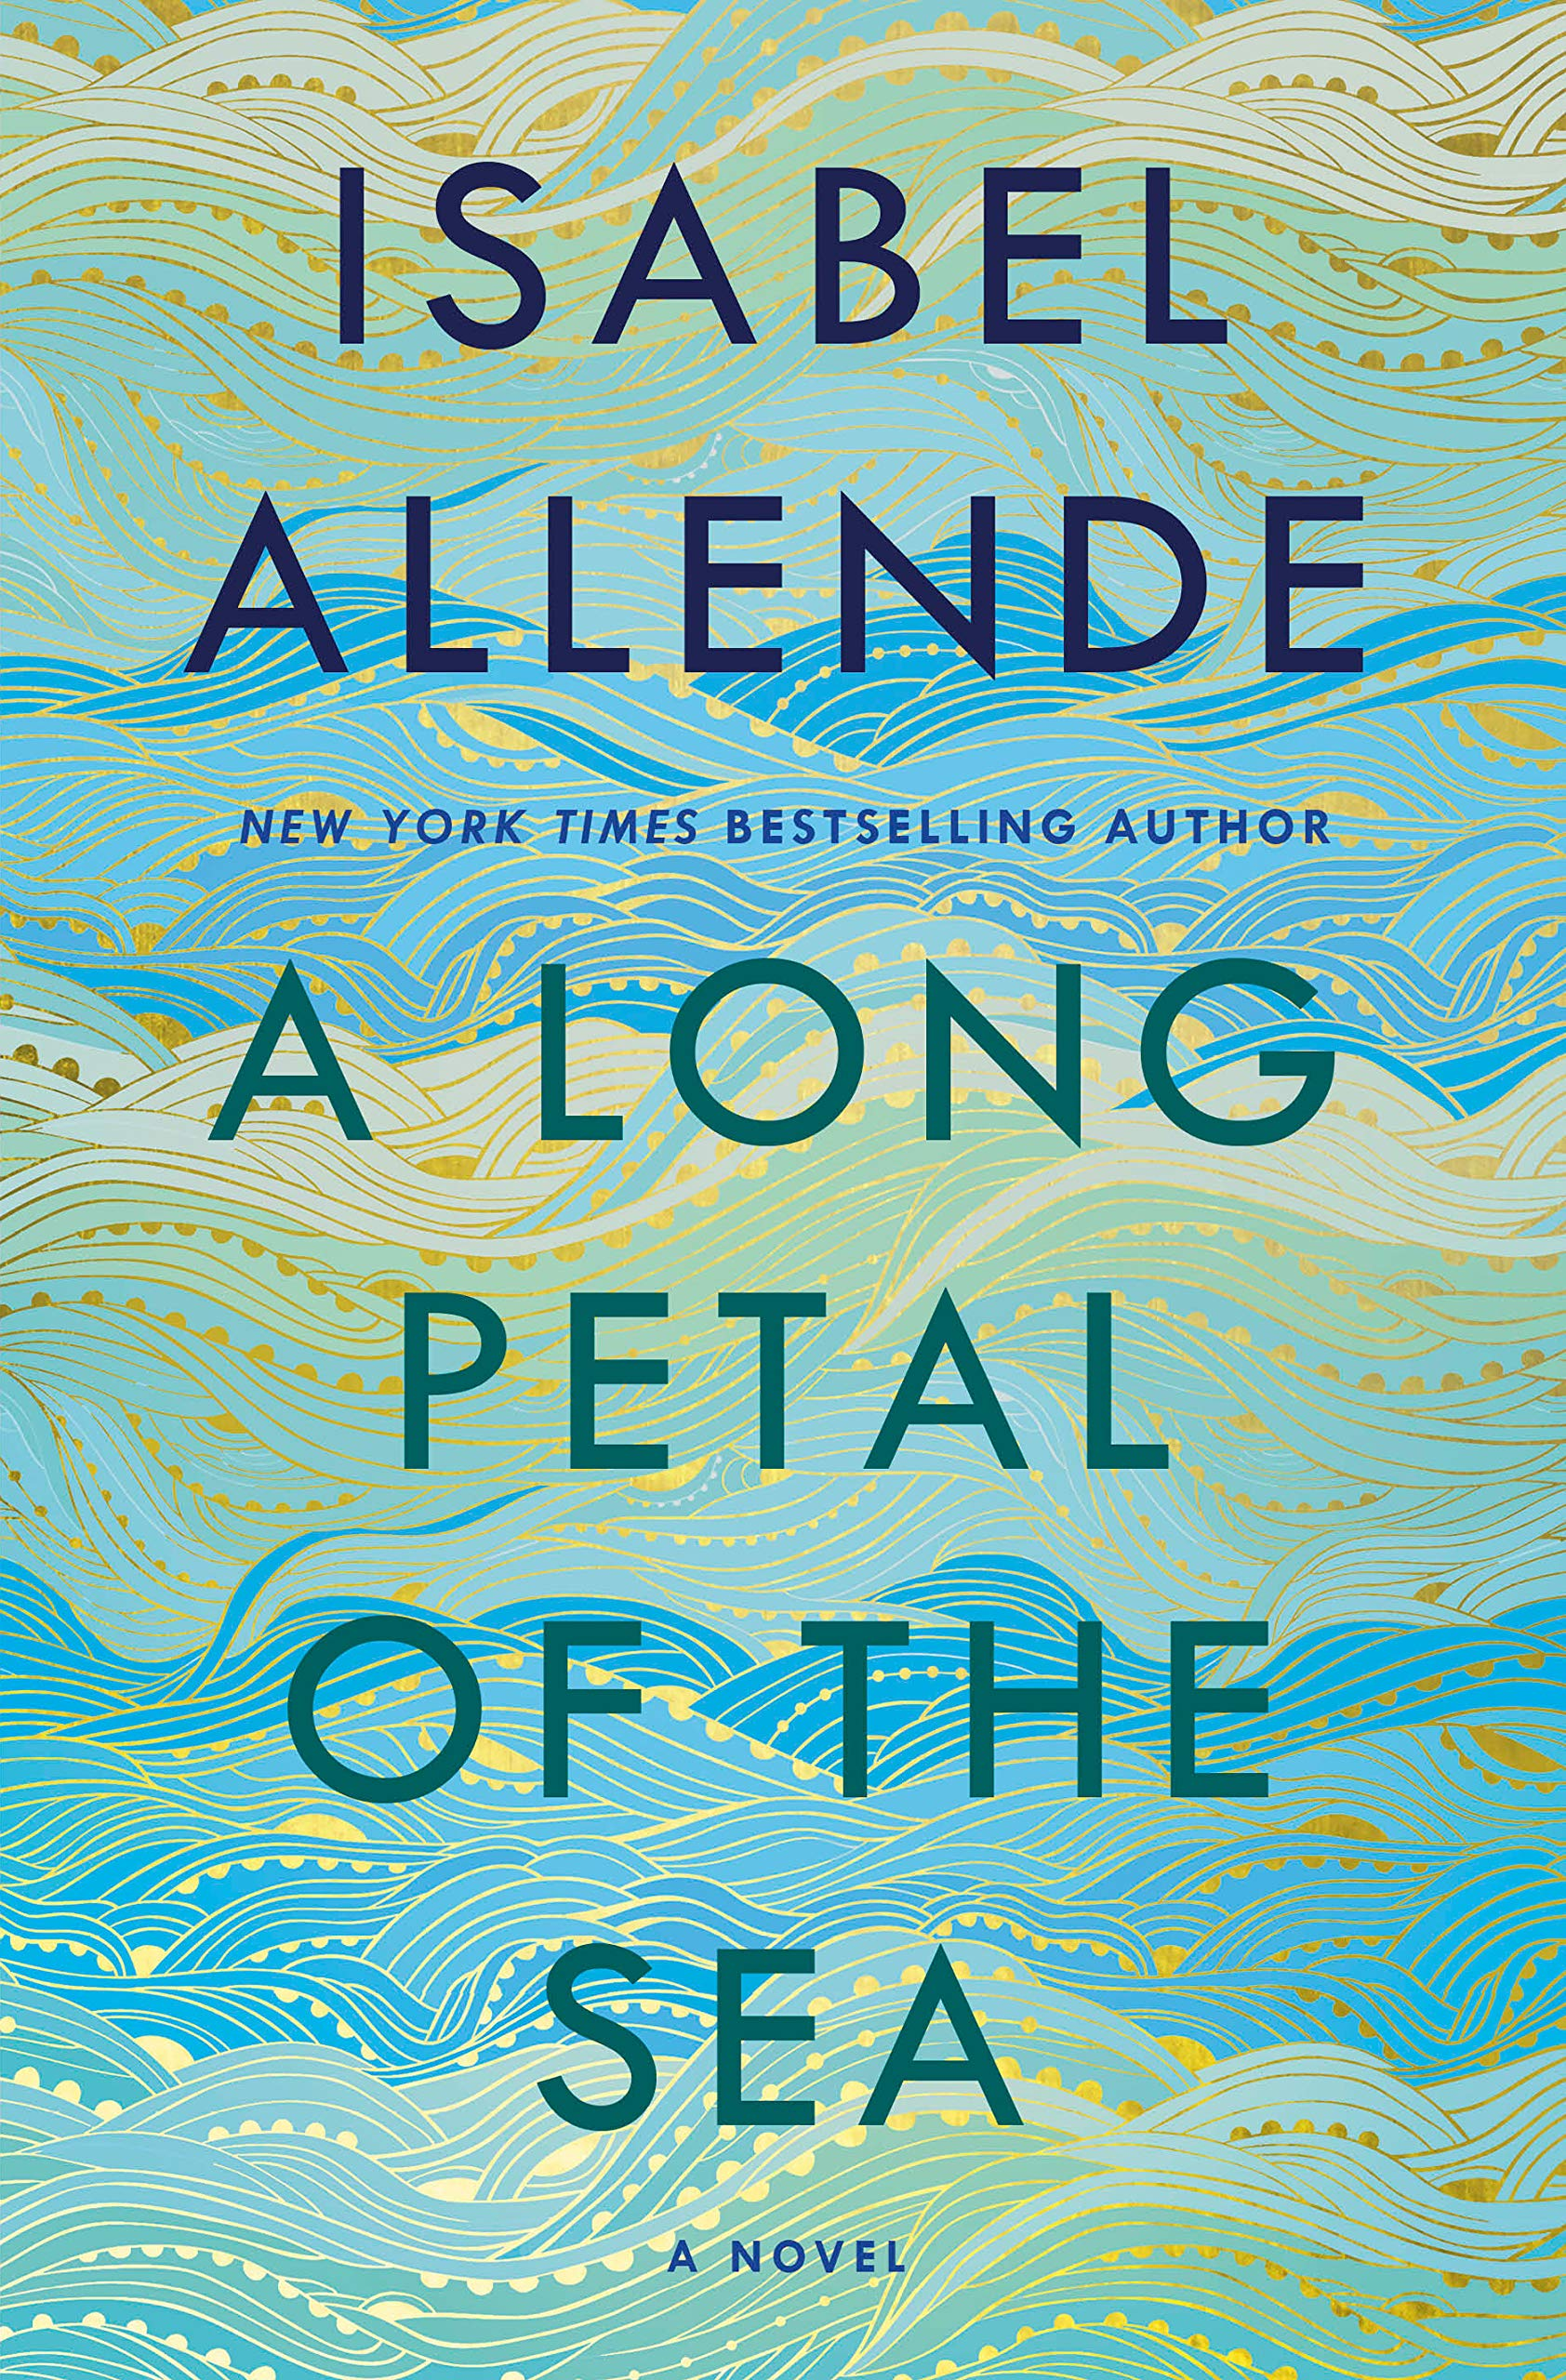 A Long Petal of the Sea: A Novel: Allende, Isabel, Caistor, Nick ...